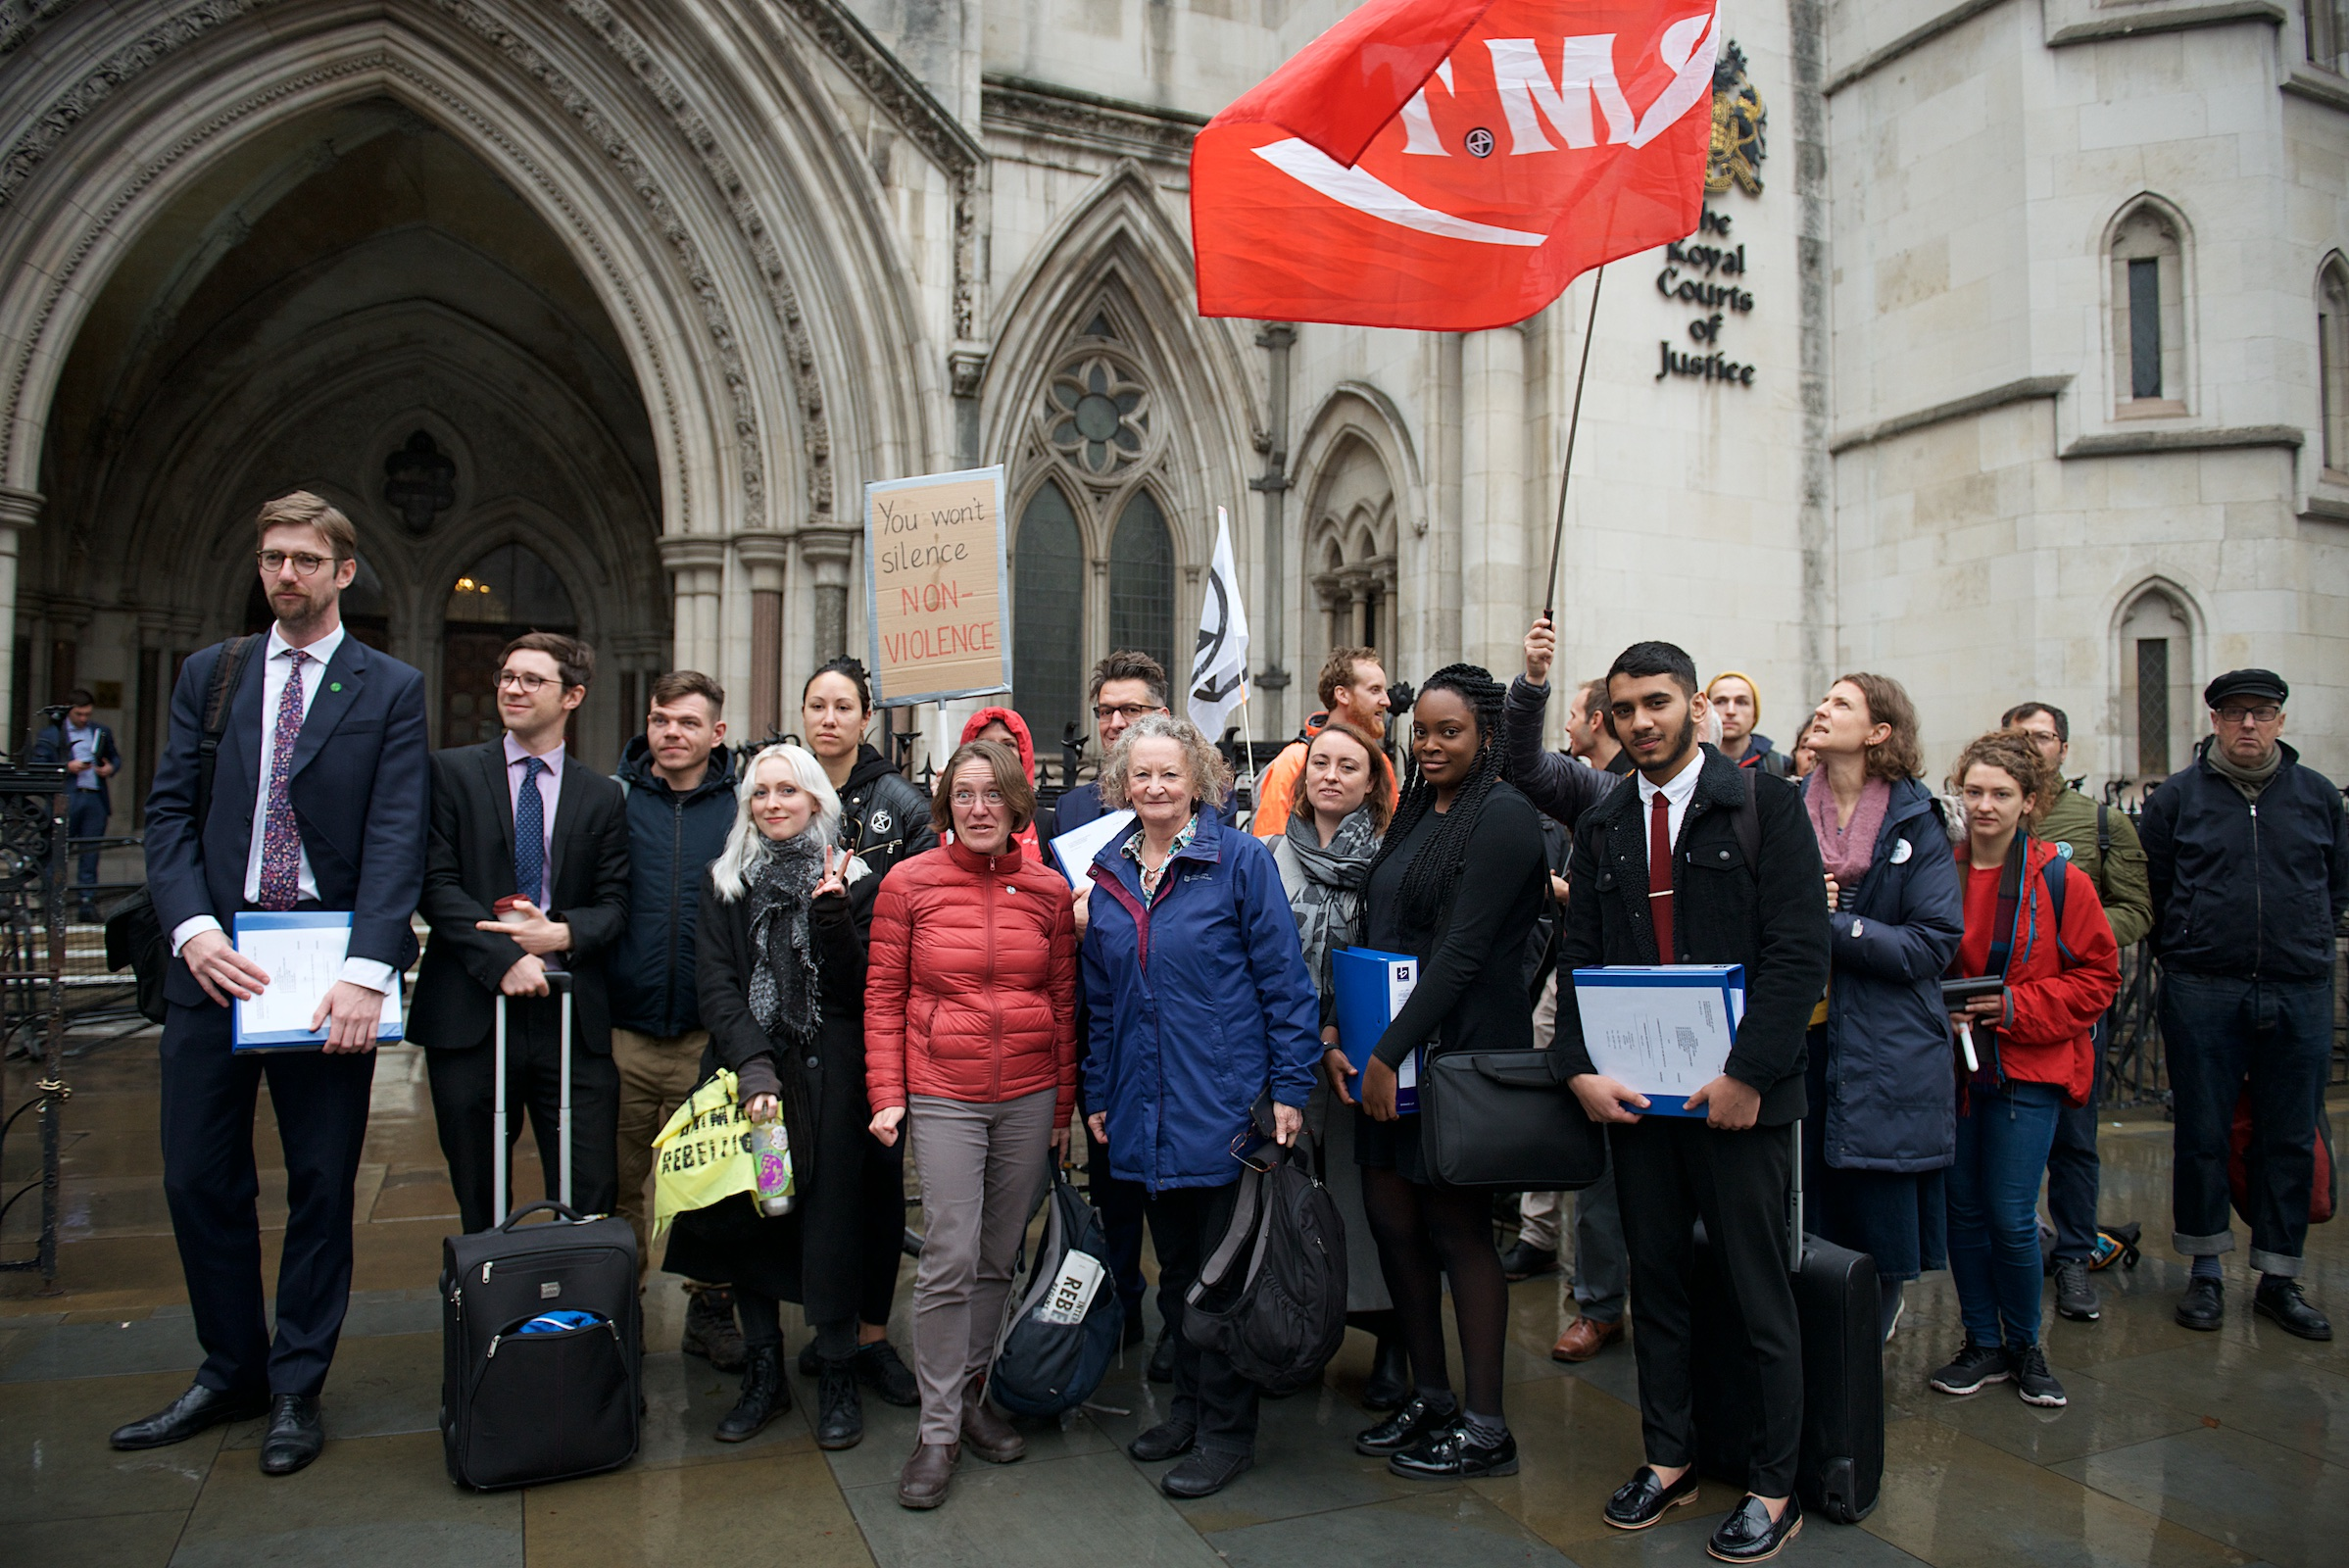 Climate change protesters win High Court challenge against the police